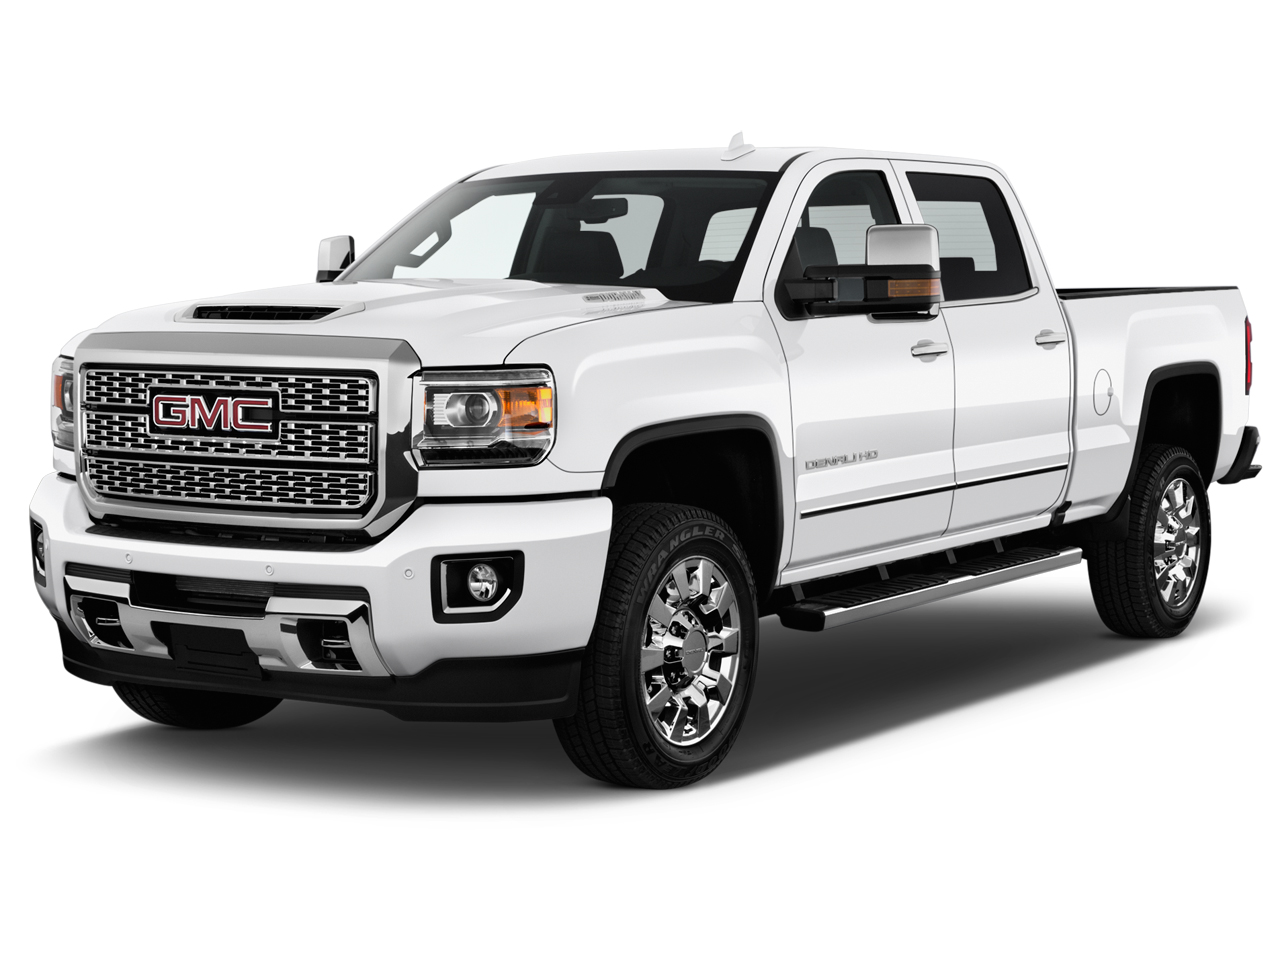 2019 gmc sierra 2500hd review  ratings  specs  prices  and photos